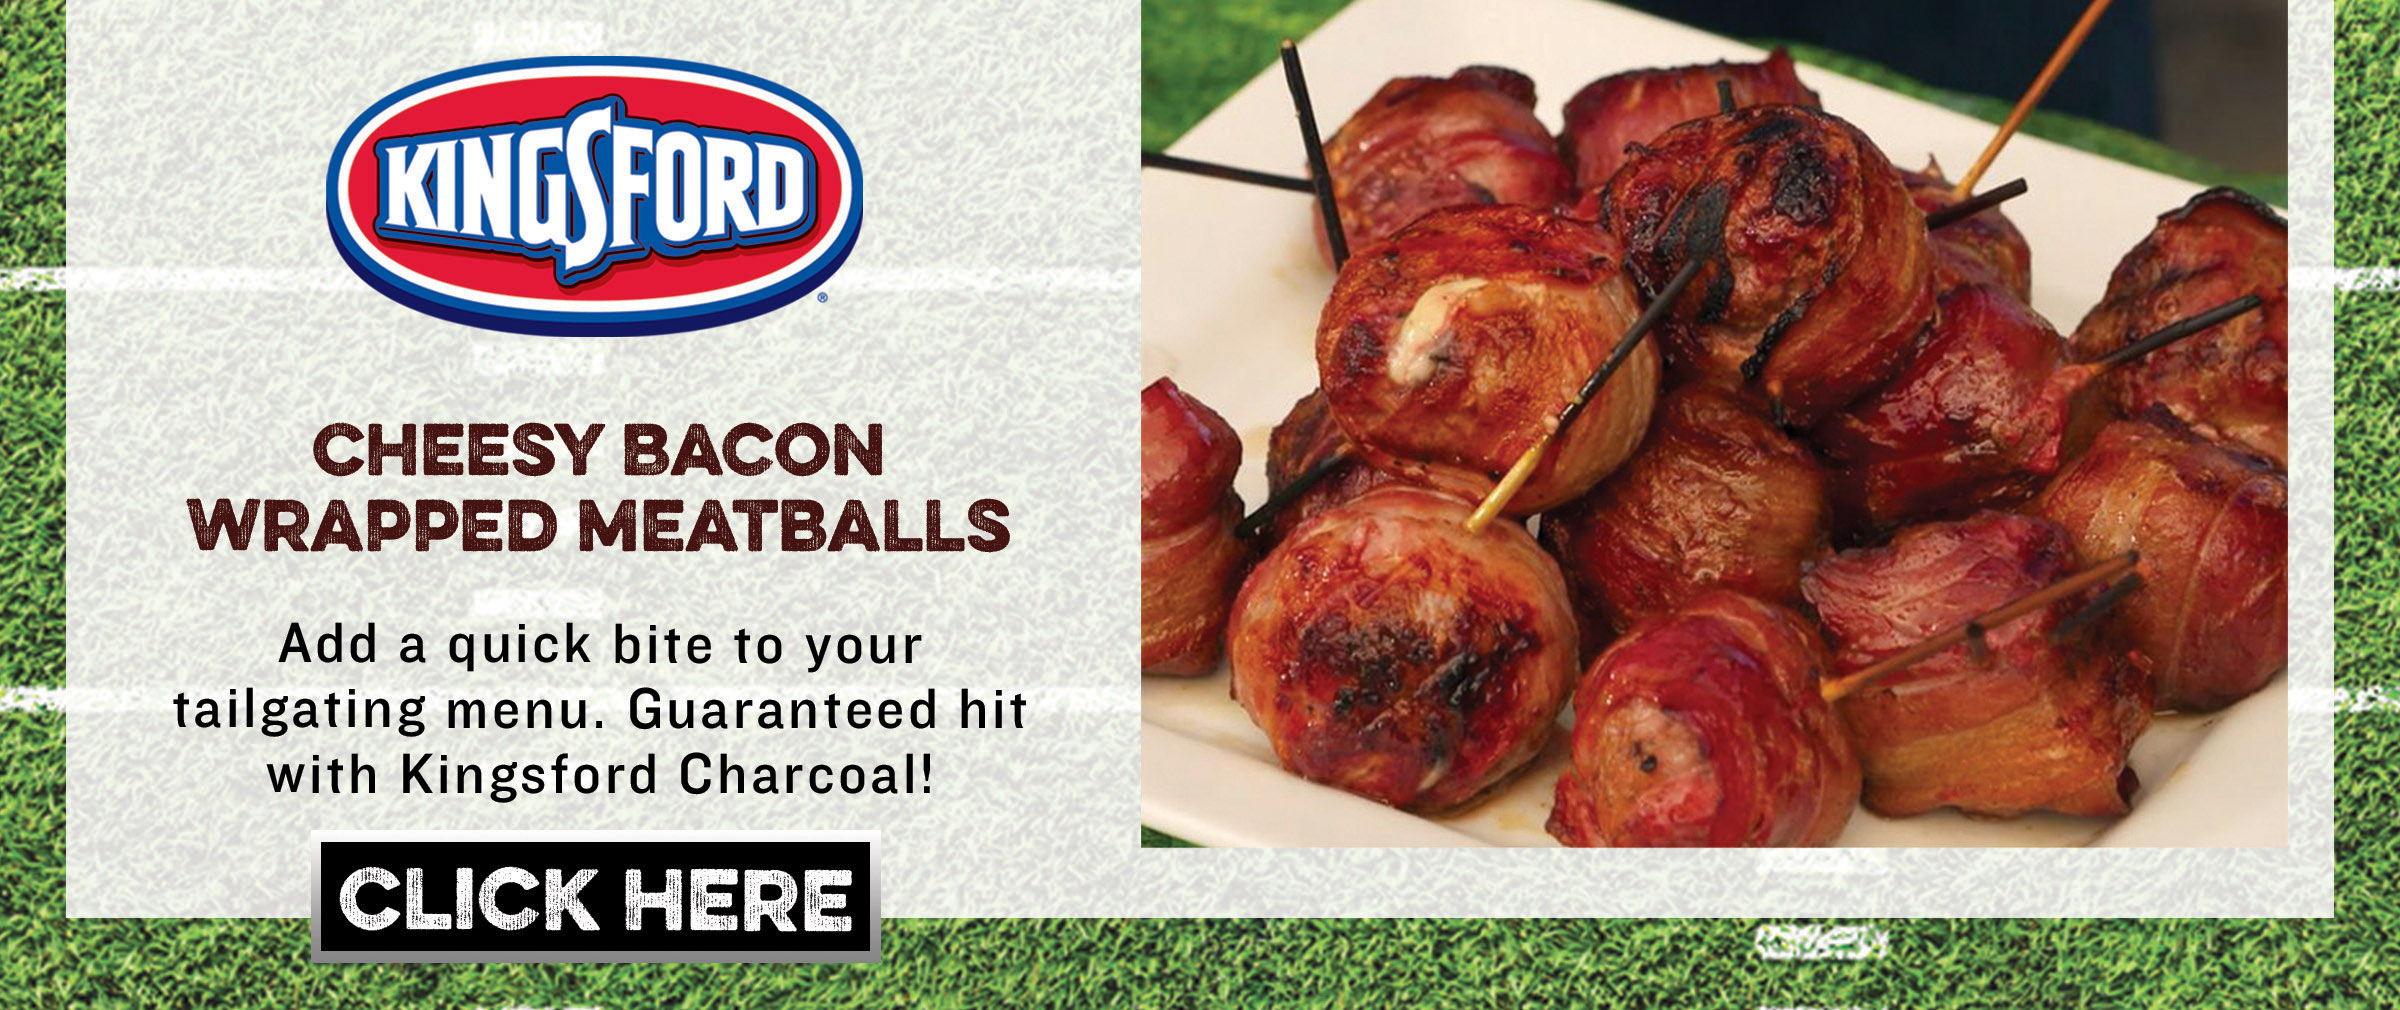 Kingsford - Cheesy Bacon Wrapped Meatballs